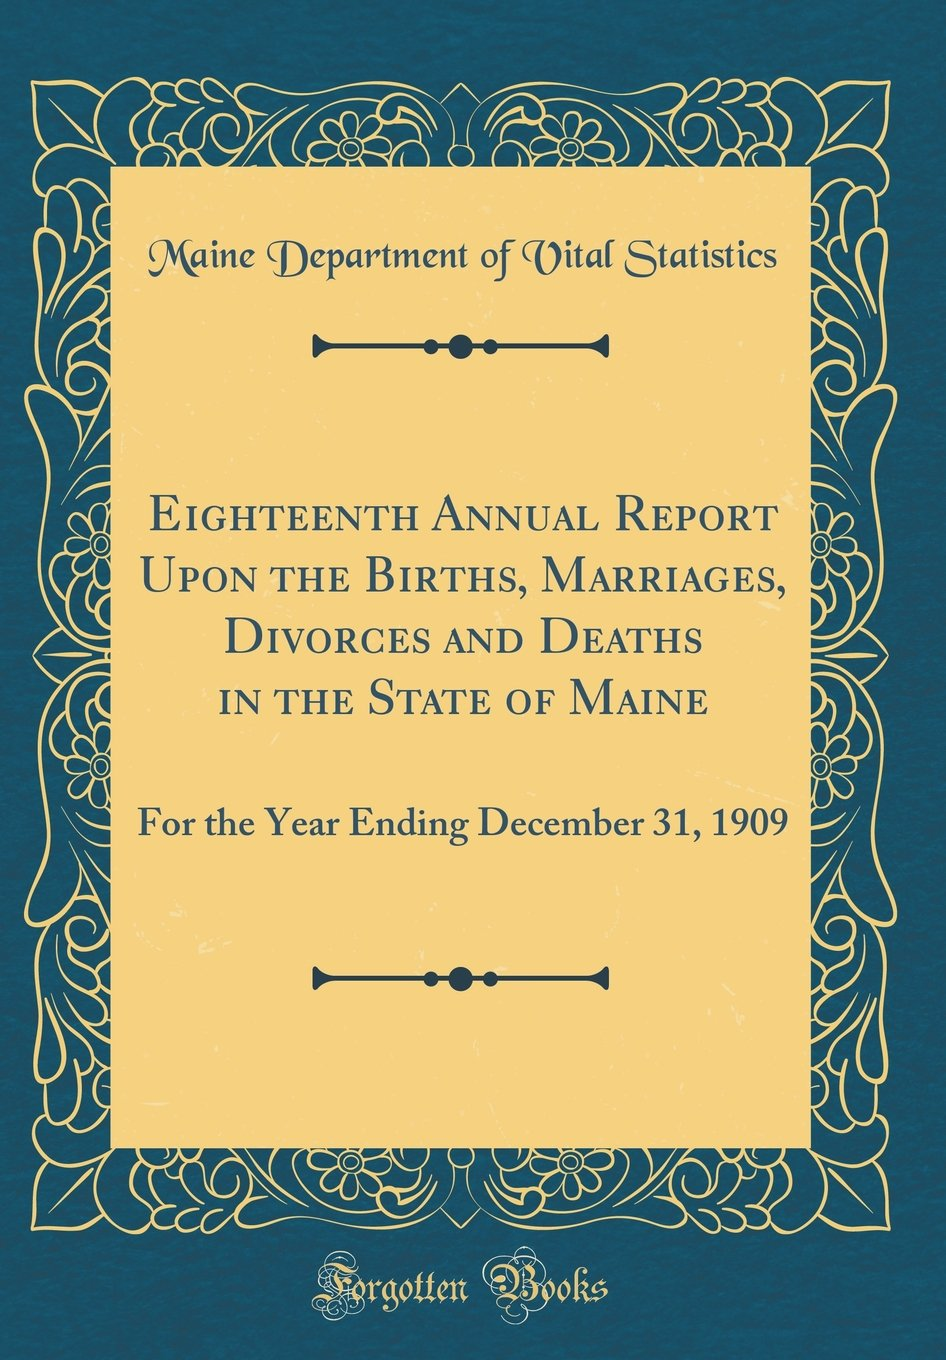 Read Online Eighteenth Annual Report Upon the Births, Marriages, Divorces and Deaths in the State of Maine: For the Year Ending December 31, 1909 (Classic Reprint) PDF